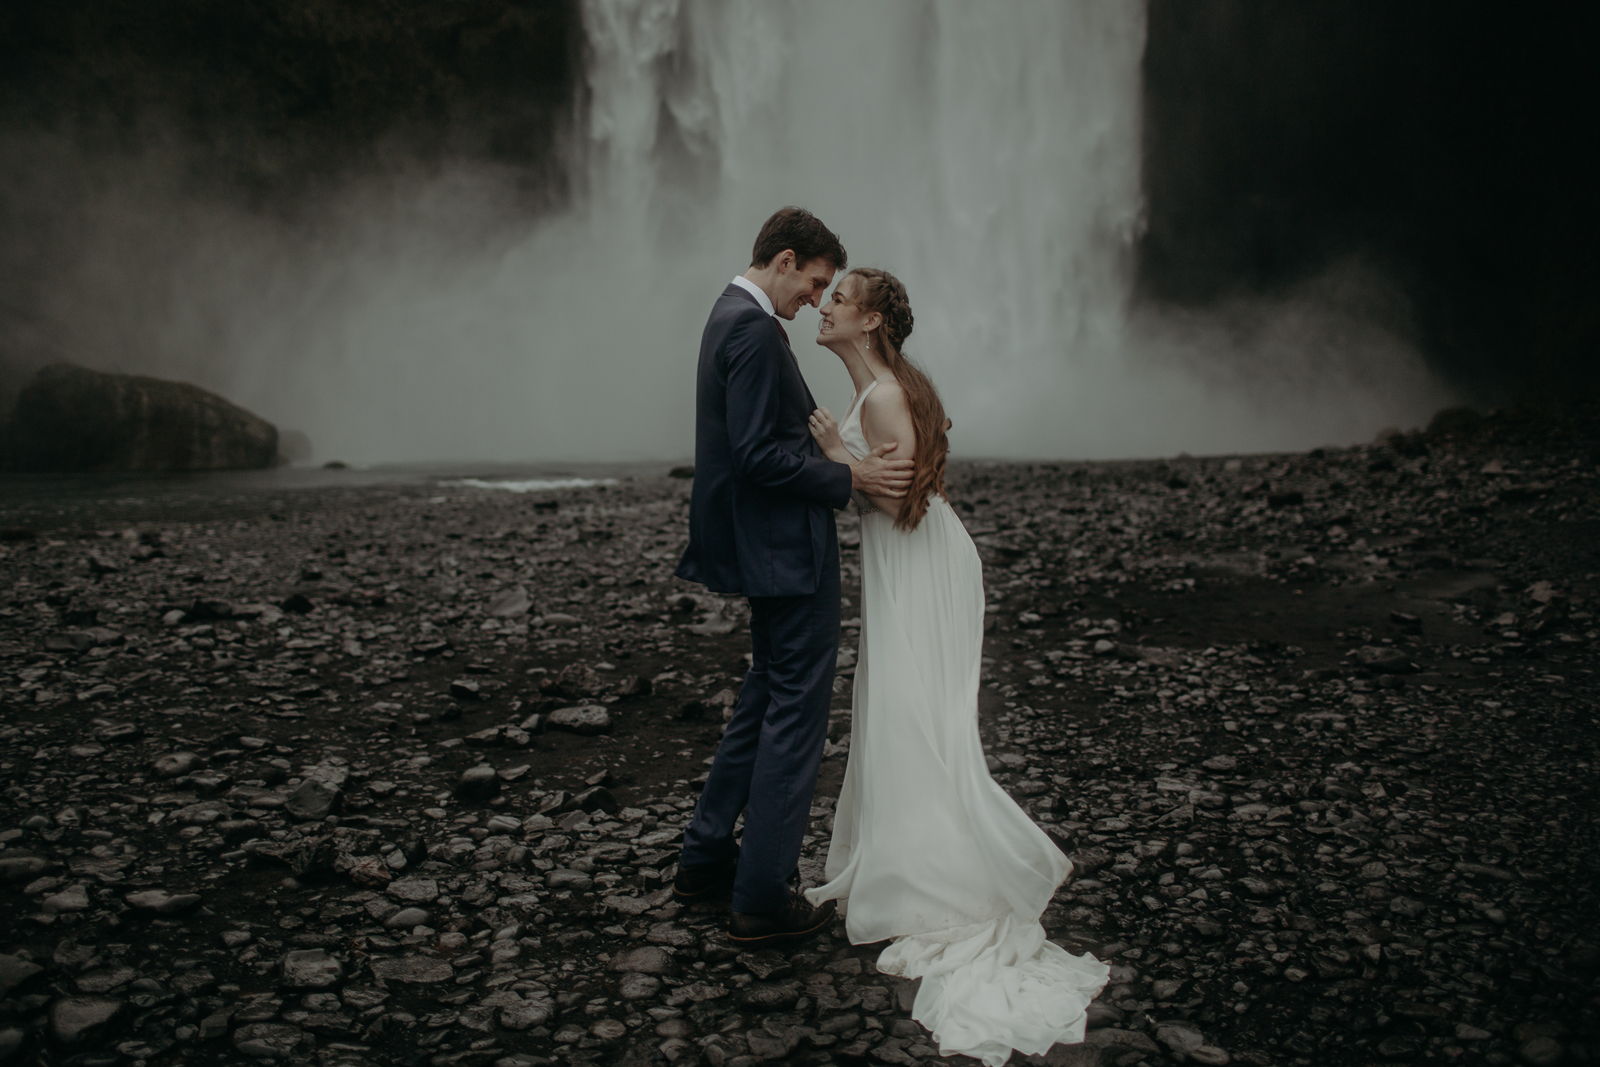 Intimate Getaway Elopement by Jane Iskra